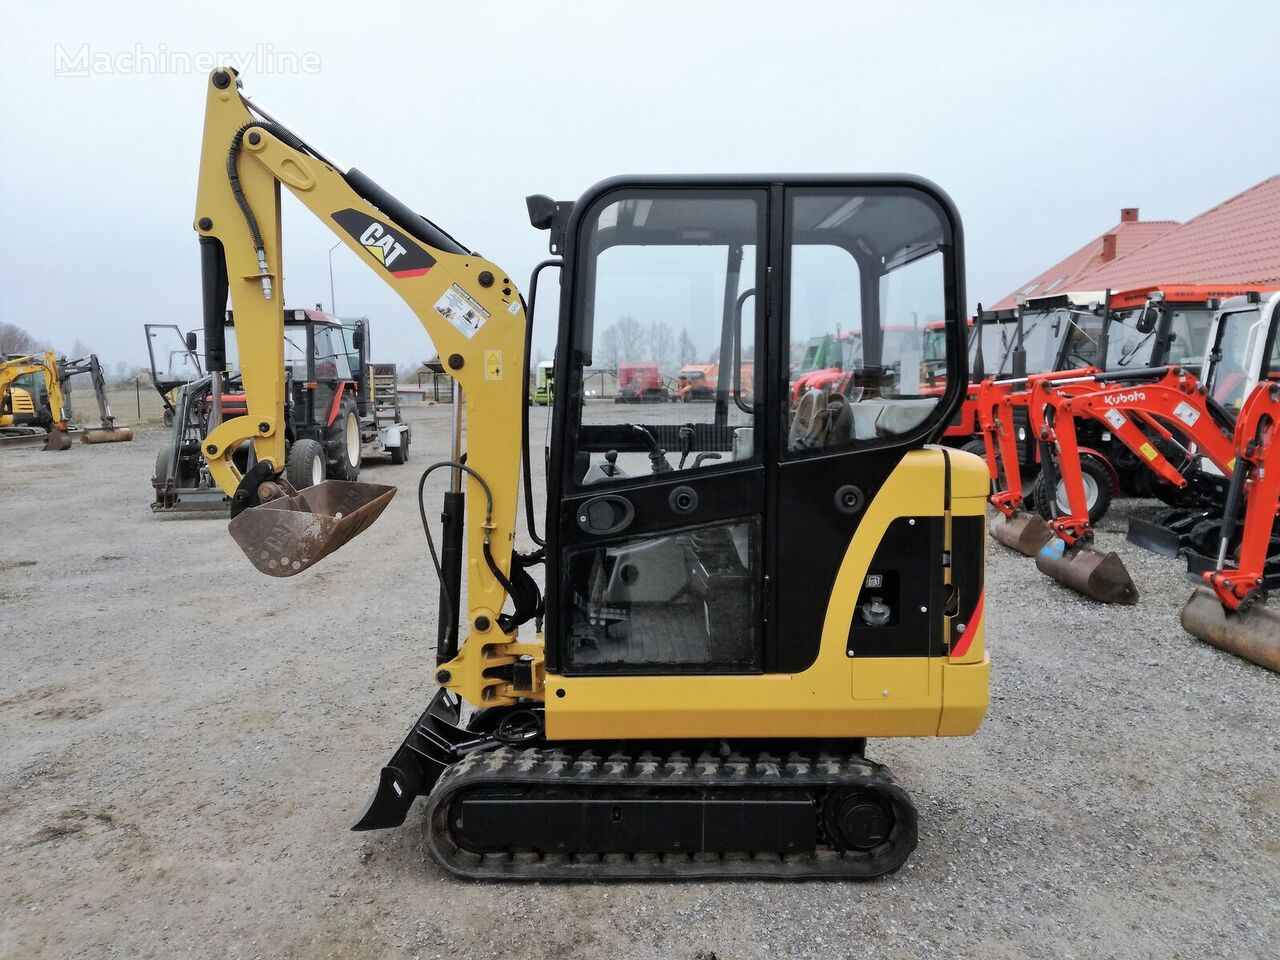 CATERPILLAR 301,6 C  mini ekskavators